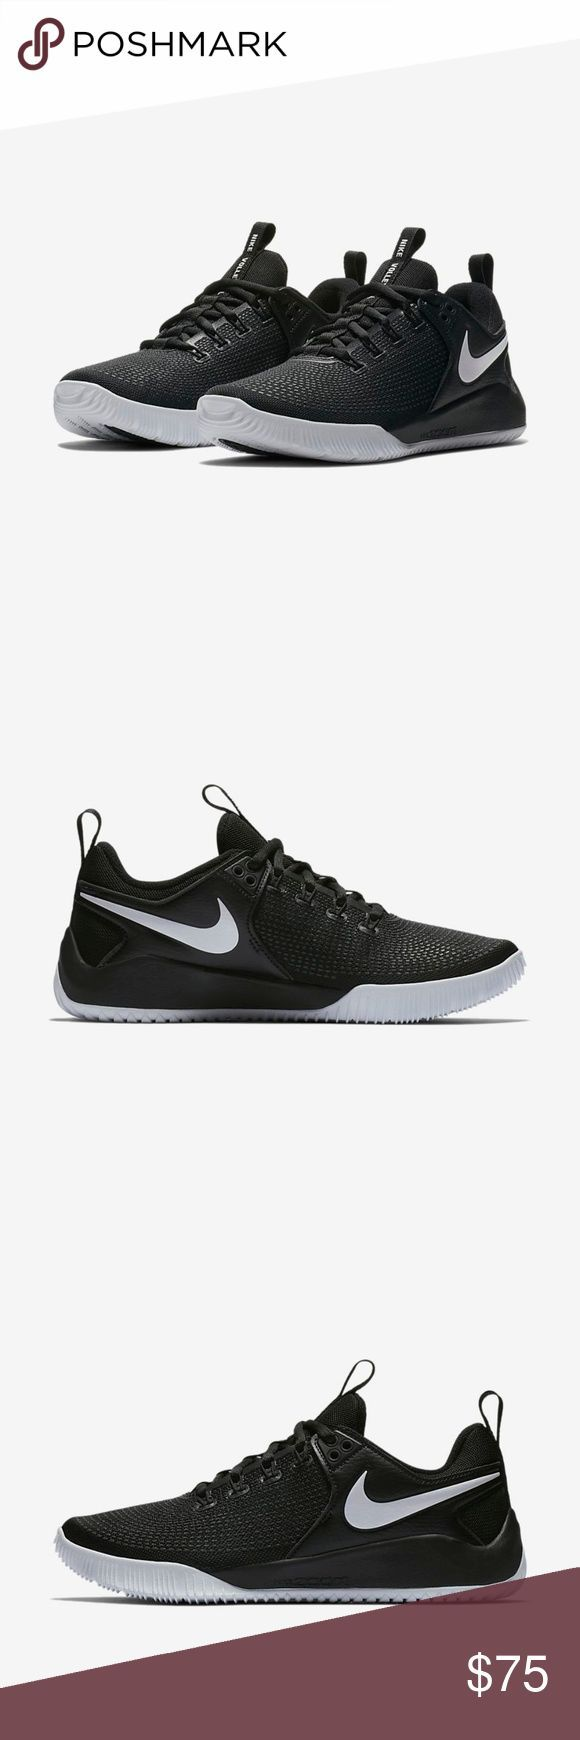 Nike Zoom Hyperace 2 Nike Damen Zoom Hyperace 2 Schwarz Weiss Nike V Fashionaccessories Fashioninfluencer Ootdfashi Nike Zoom Volleyball Shoes Nike Women